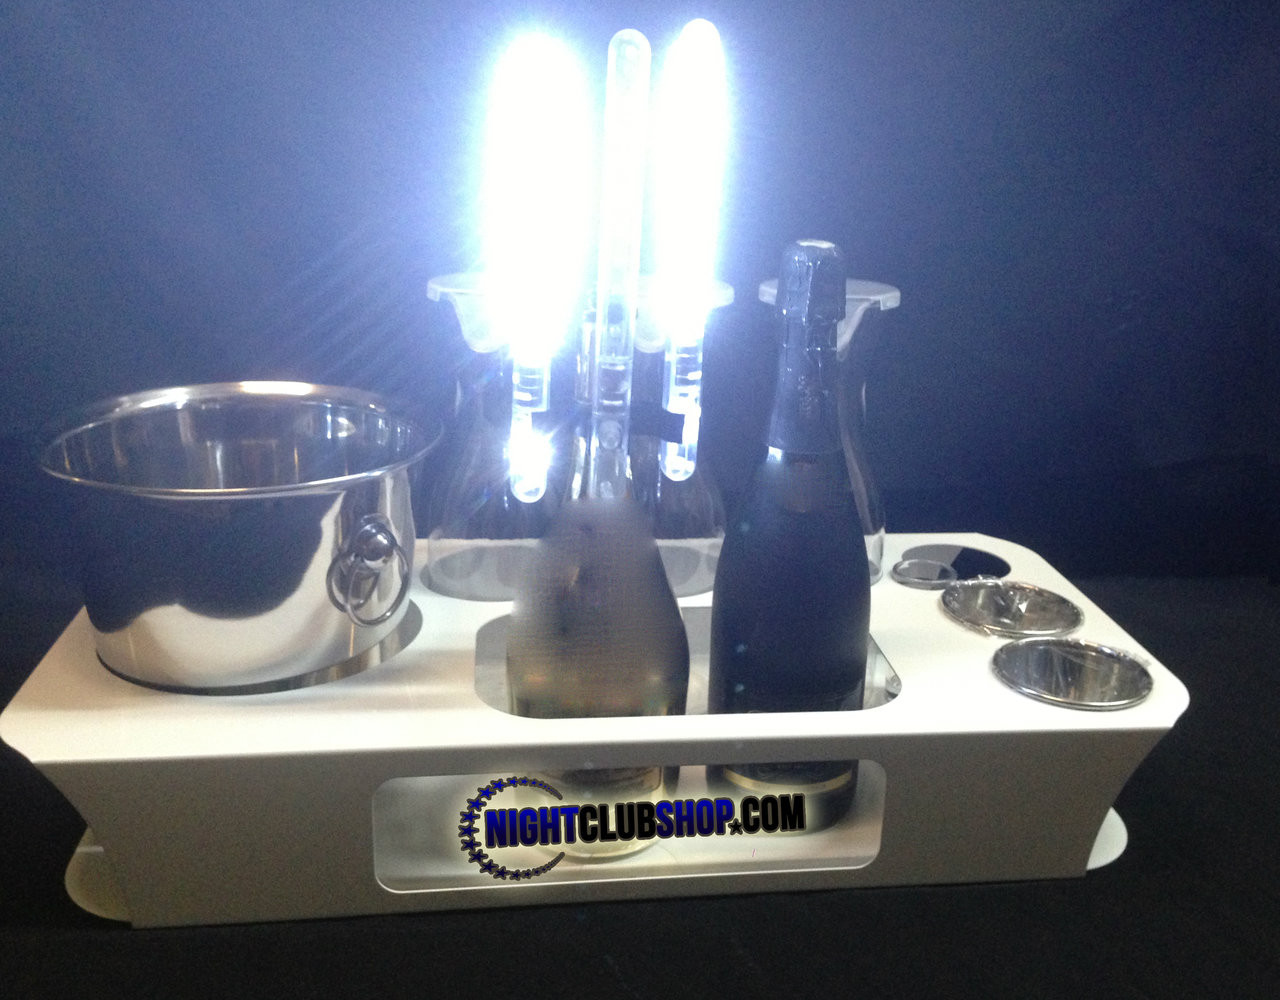 silver, logo, led, nitesparx, name, changer, bottle service, tray, vip, custom, nightclub, club, bar, delivery, caddie, champagne, bottle, presentation, high quality, scene